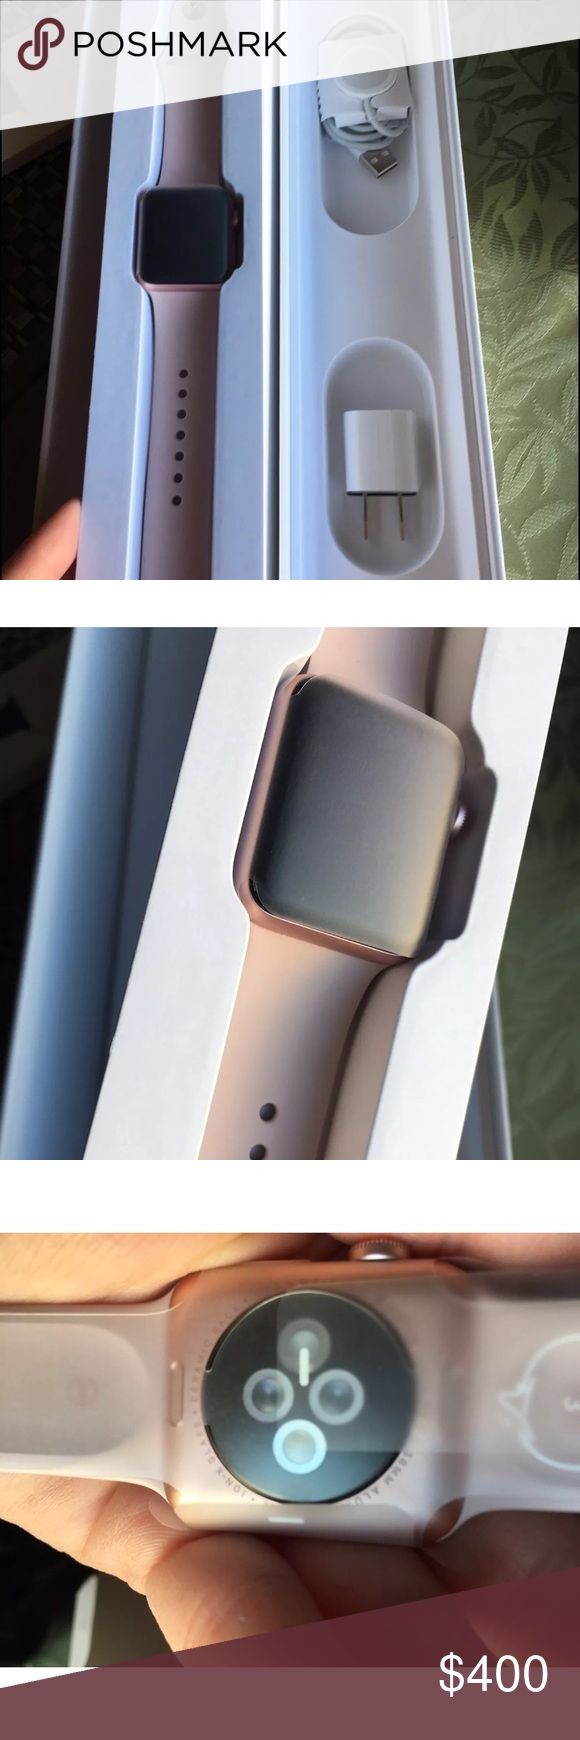 Brand new Apple Series 2 Watch Rose Gold-Skinomi Category: Cell Phones & Accessories > Smart Watches Brand: Apple Case Material: Aluminum Model: Watch Series 2 Band Color: Pink MPN: MNNY2LL/A Band Material: Fluoroelastomer Operating System: Apple Watch OS Series: Apple Watch Series 2 Compatible Operating System: iOS - Apple Screen Protector: Skinomi Case Size: 38mm New In open box.  Professionally installed military grad screen cover.  Was gift that was rejected.  My loss. Apple Accessories…